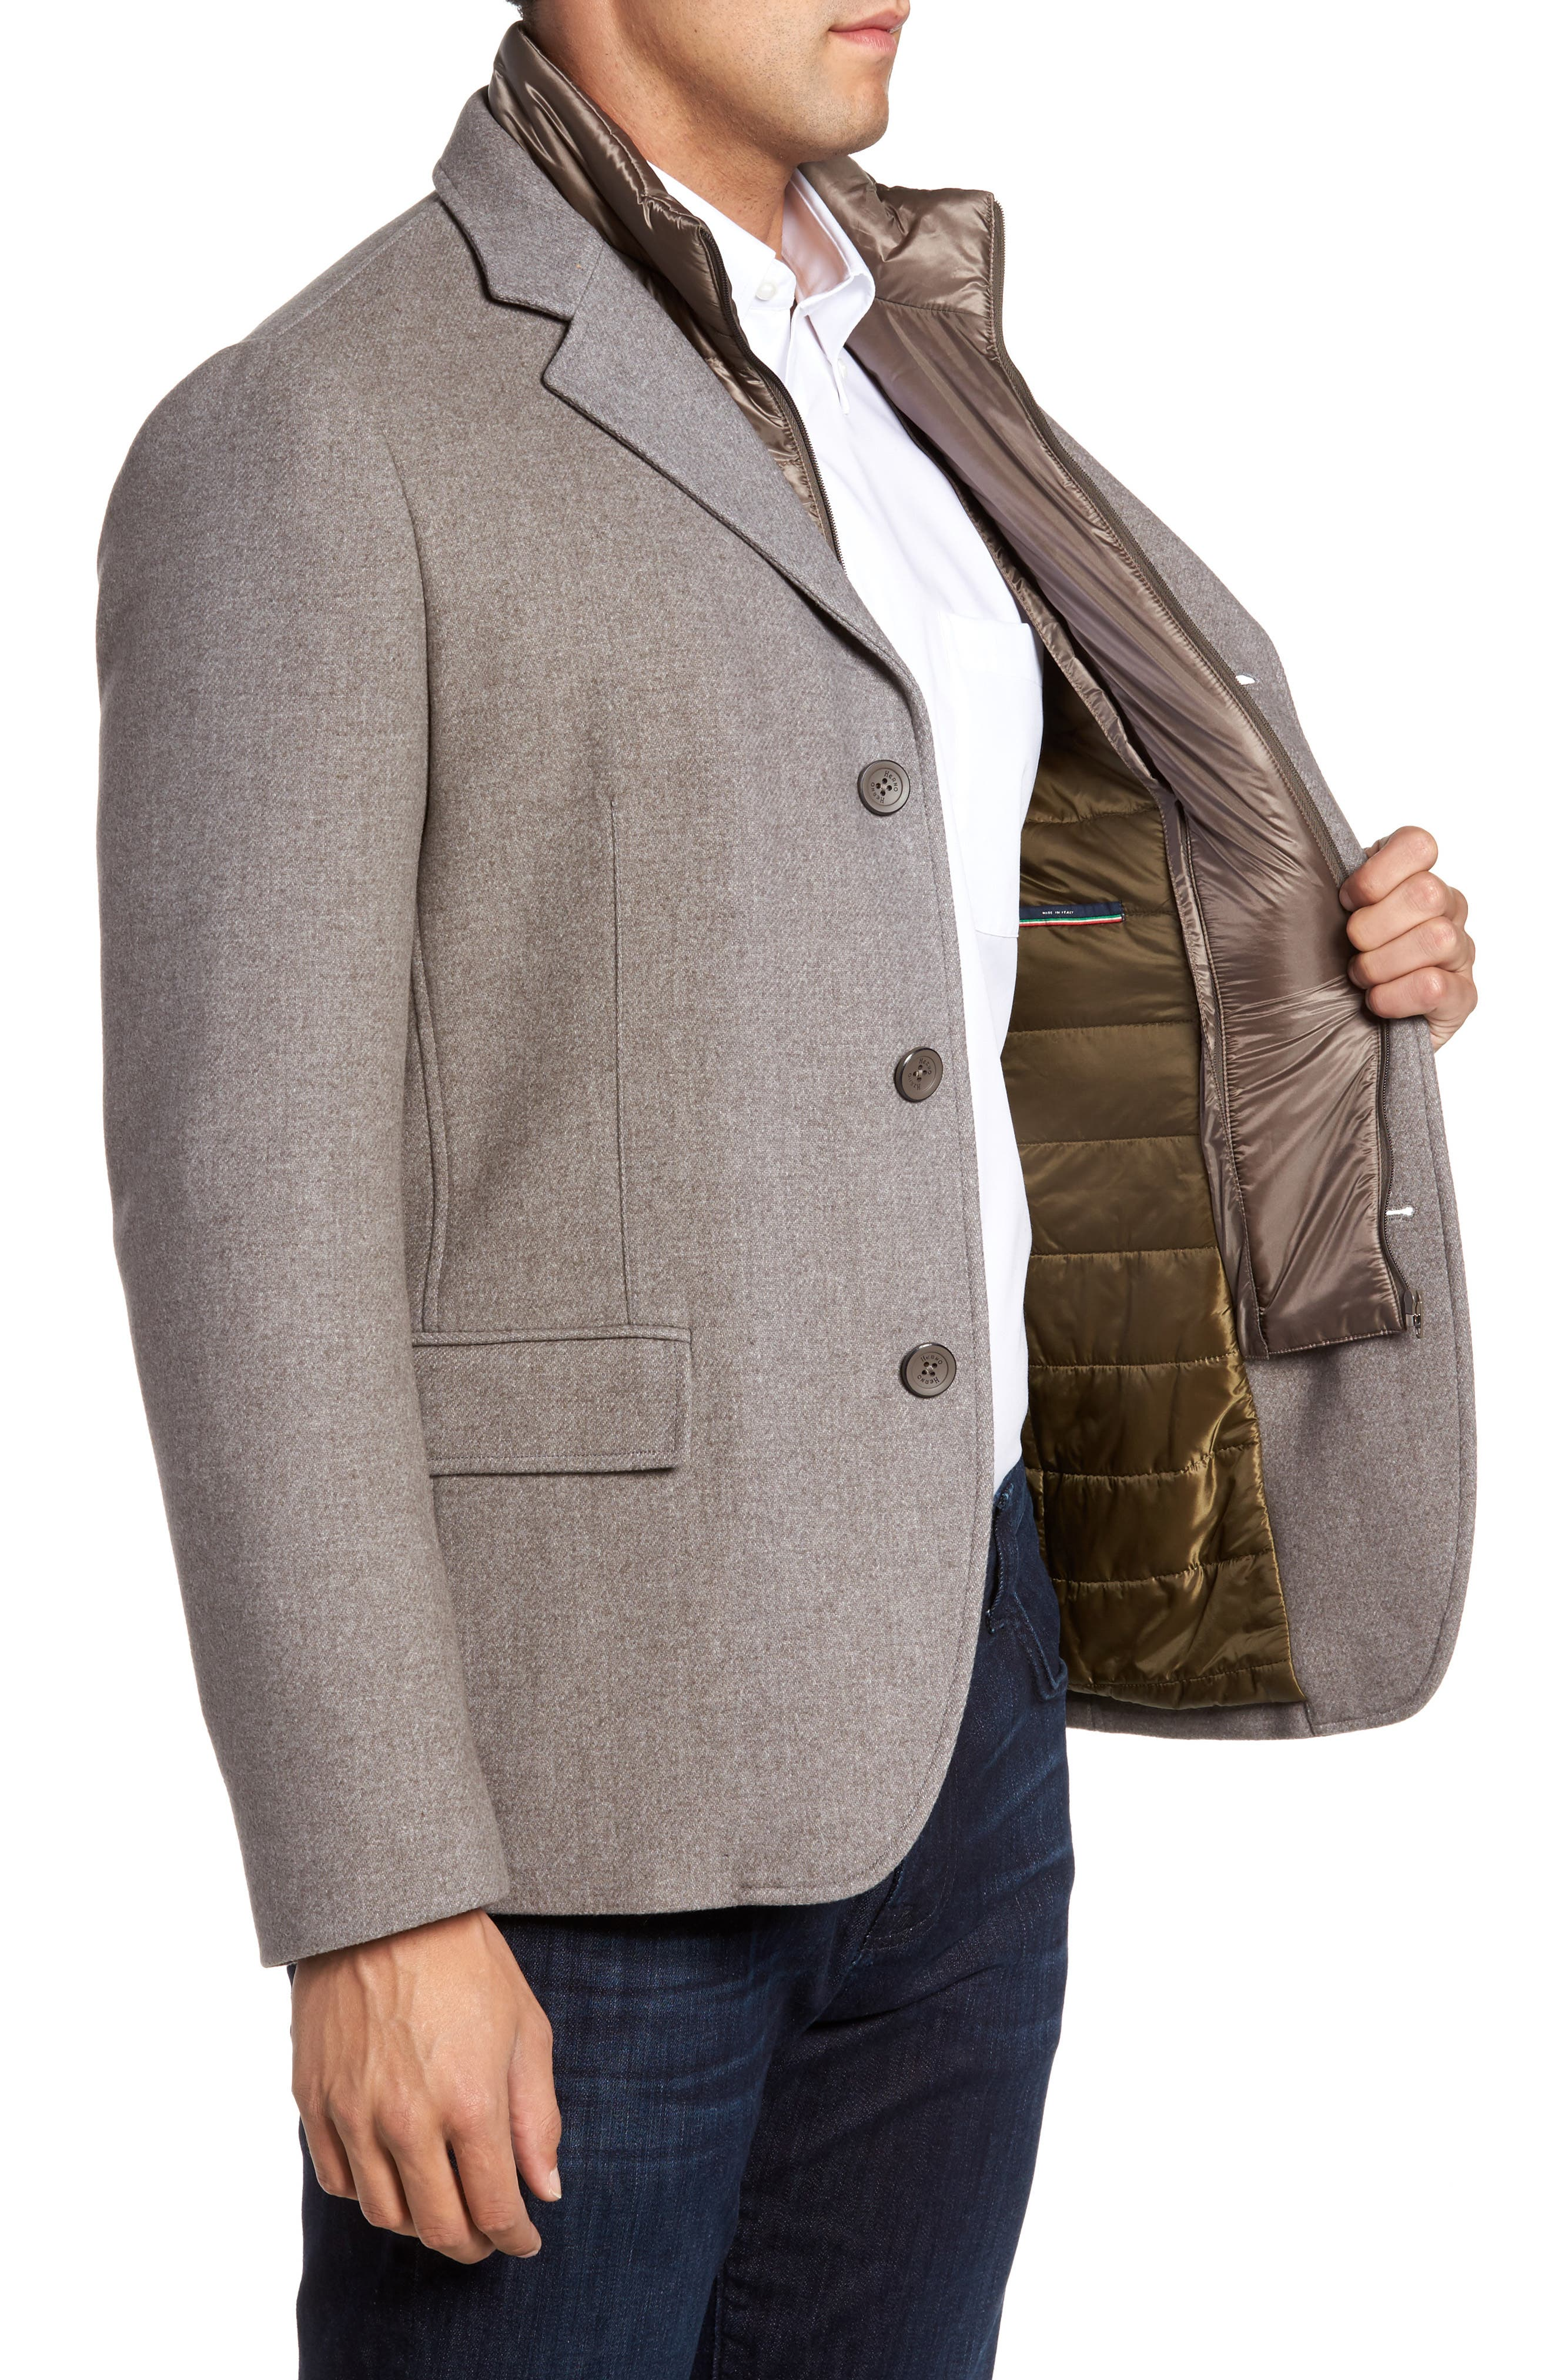 Wool Blend Blazer with Removable Quilted Bib,                             Alternate thumbnail 3, color,                             250